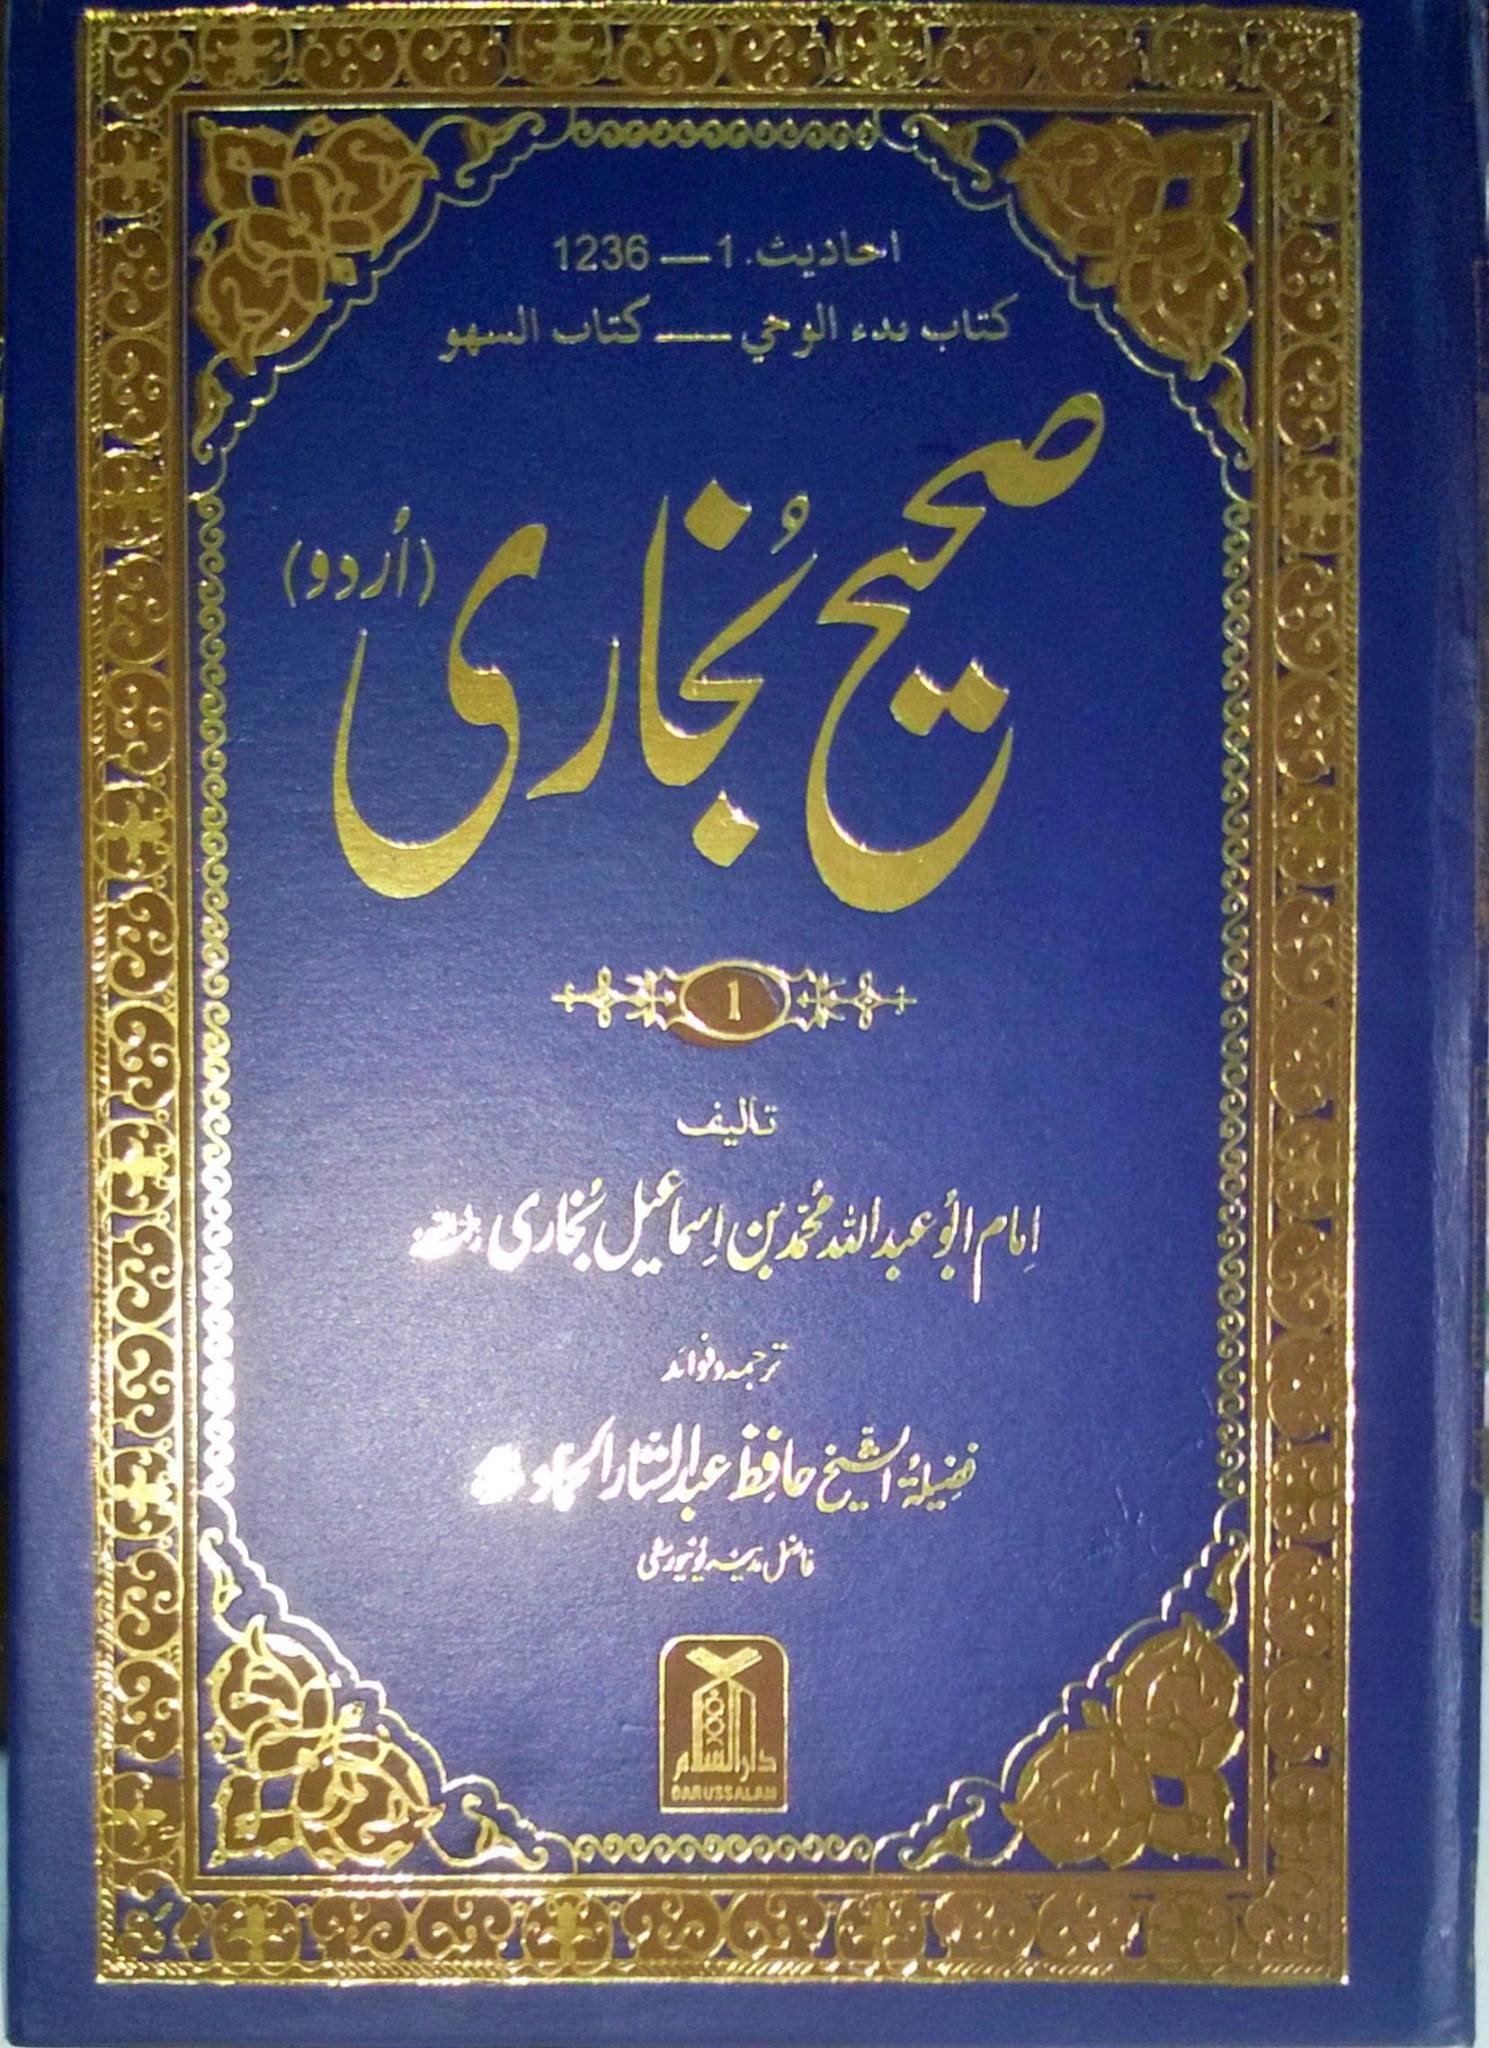 Sahih Bukhari Shareef Full Book